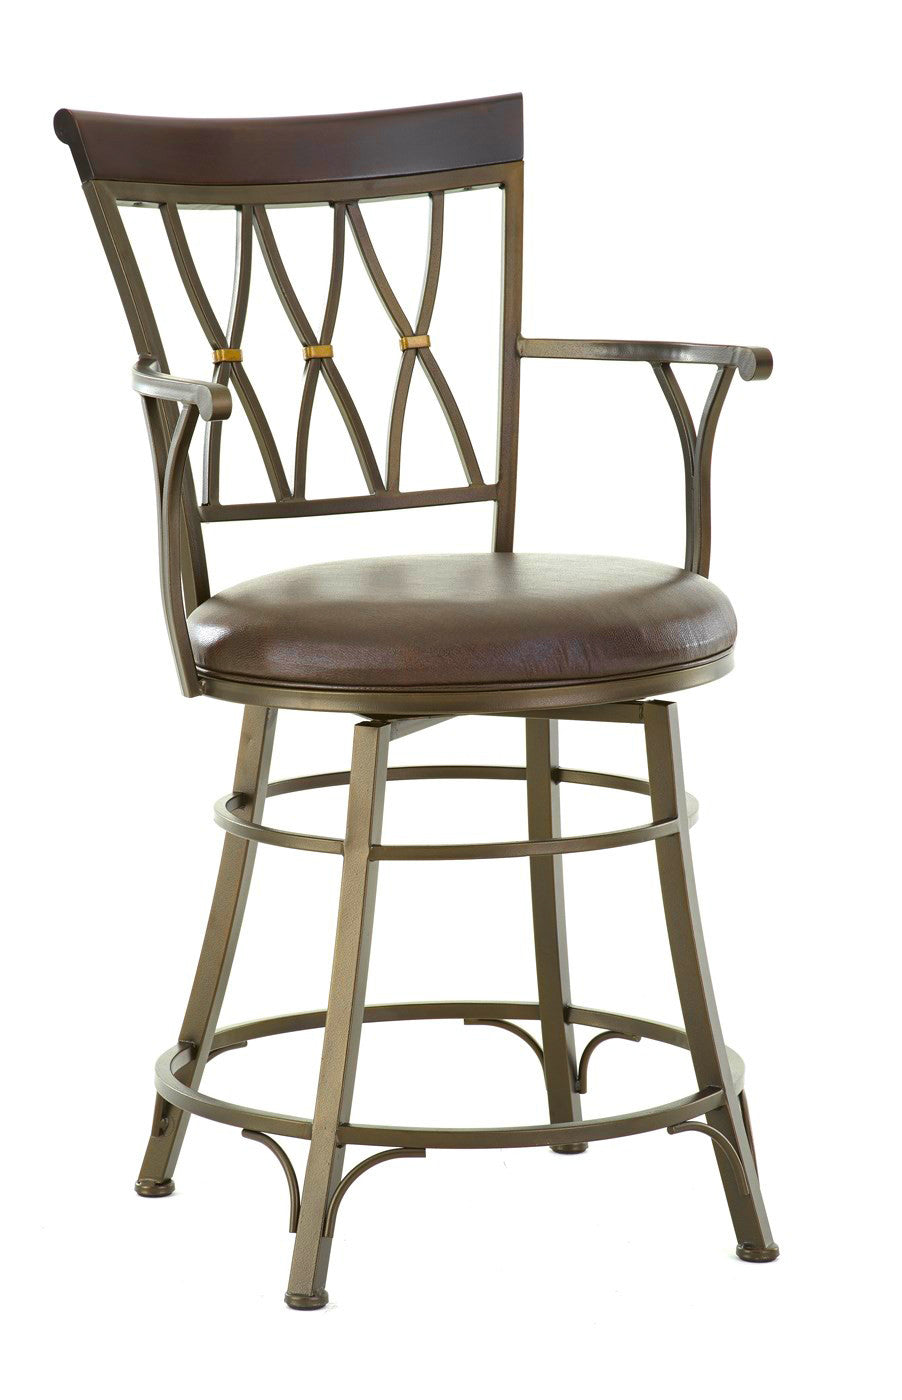 Bali Swivel Counter Height Barstool Steve Silver Company Gallery